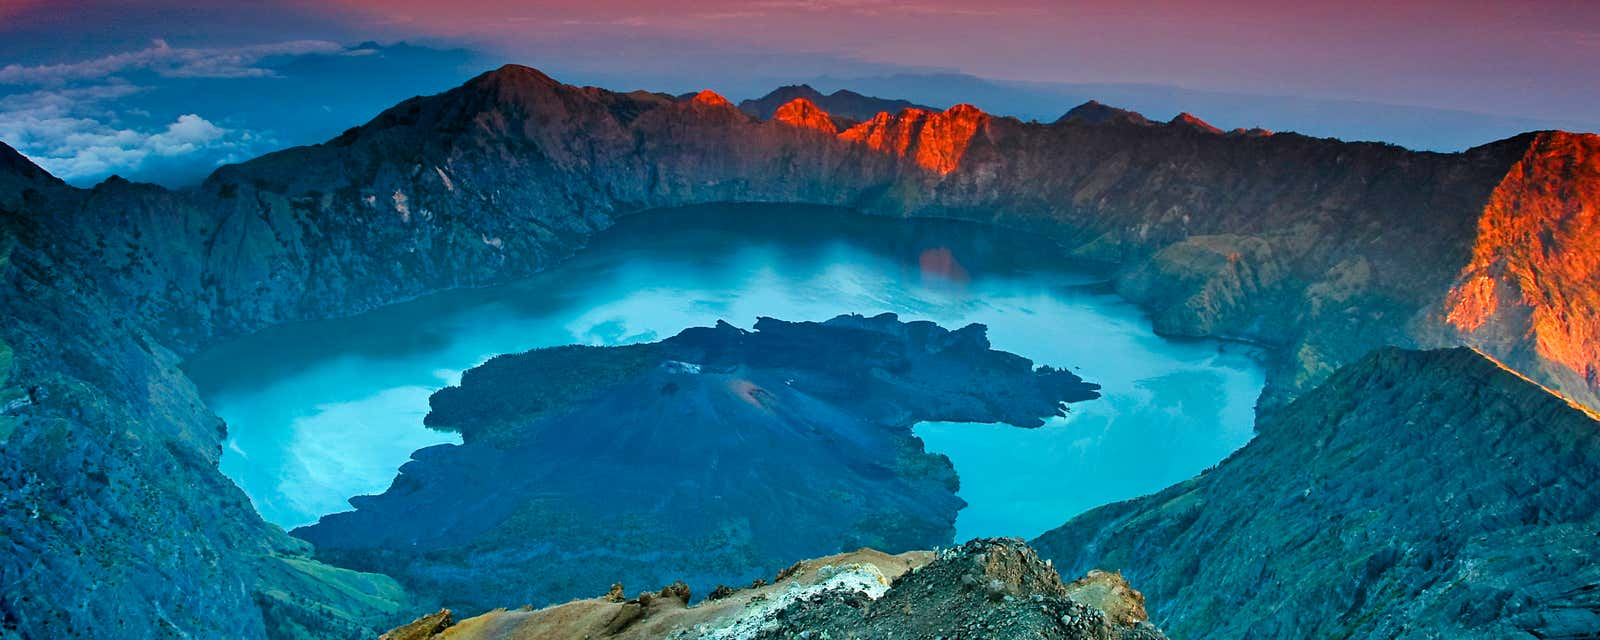 Red sky delight, Lombok, Indonesia